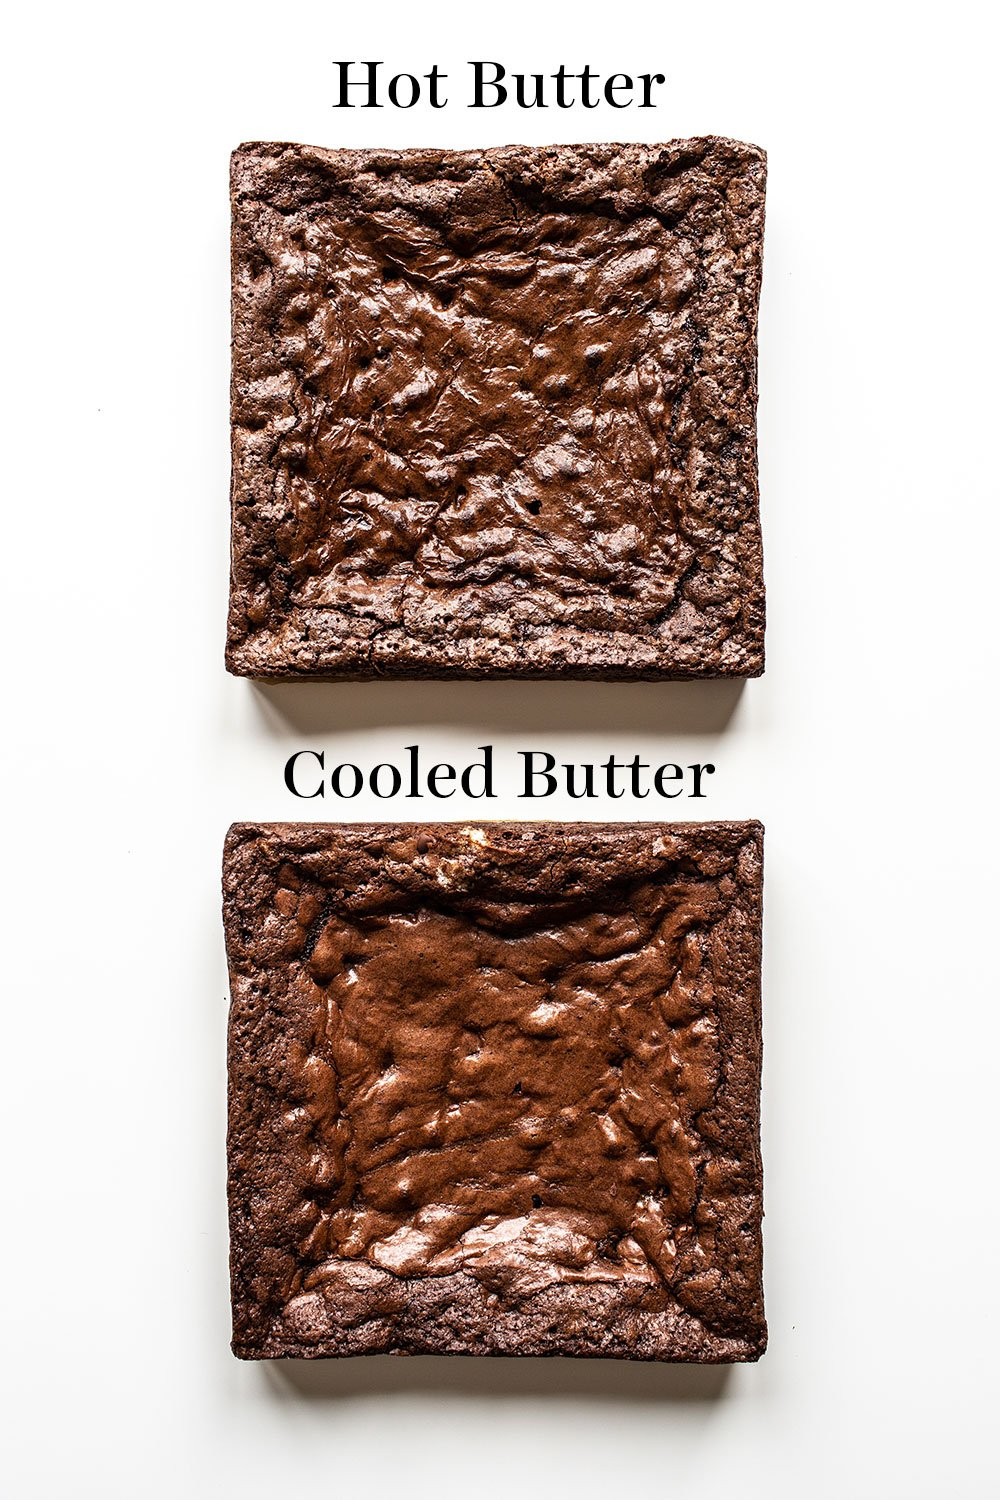 comparison of hot butter vs cooled butter brownies